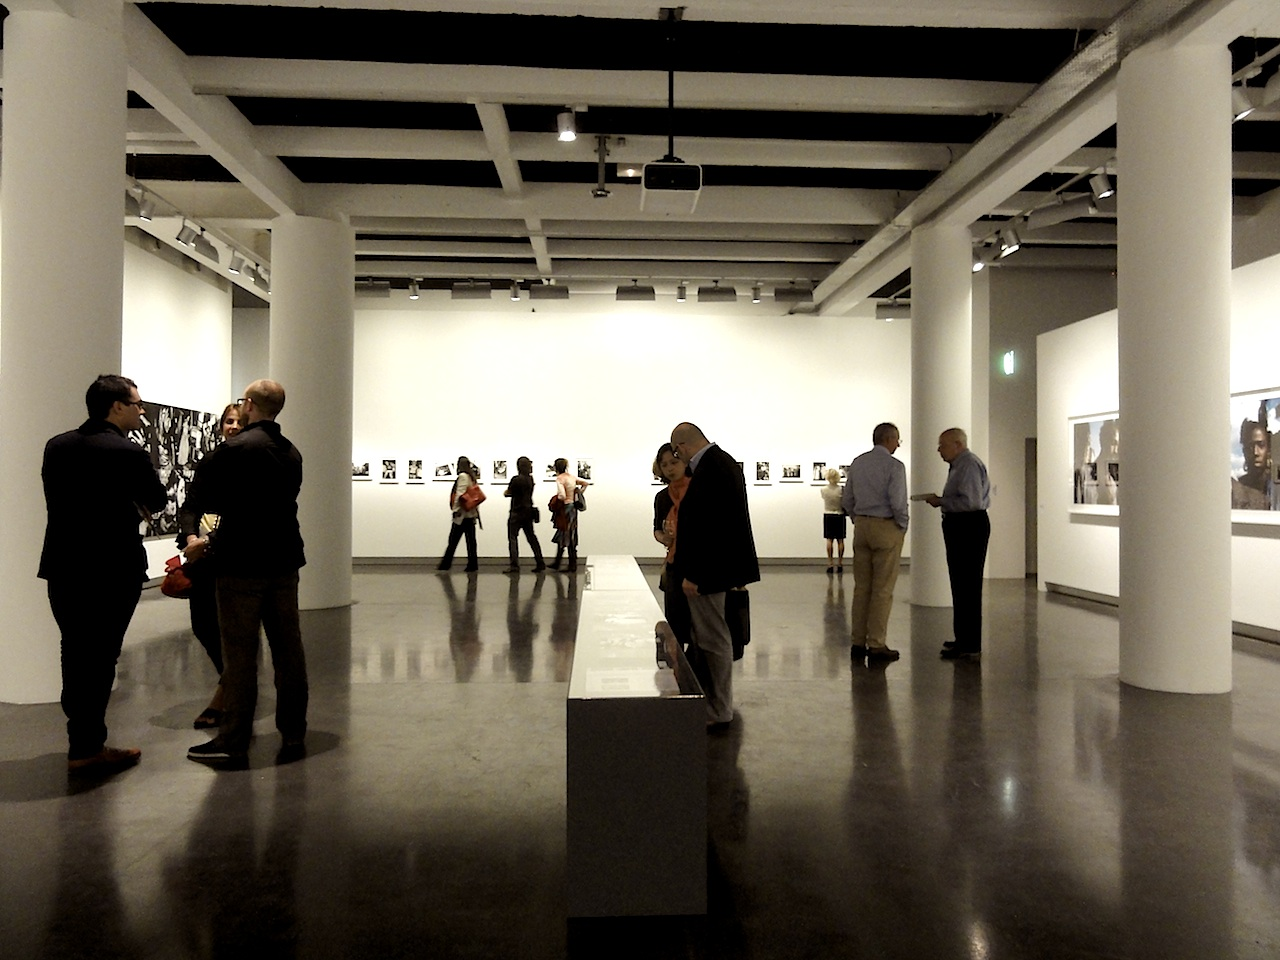 balvernissage2.jpg